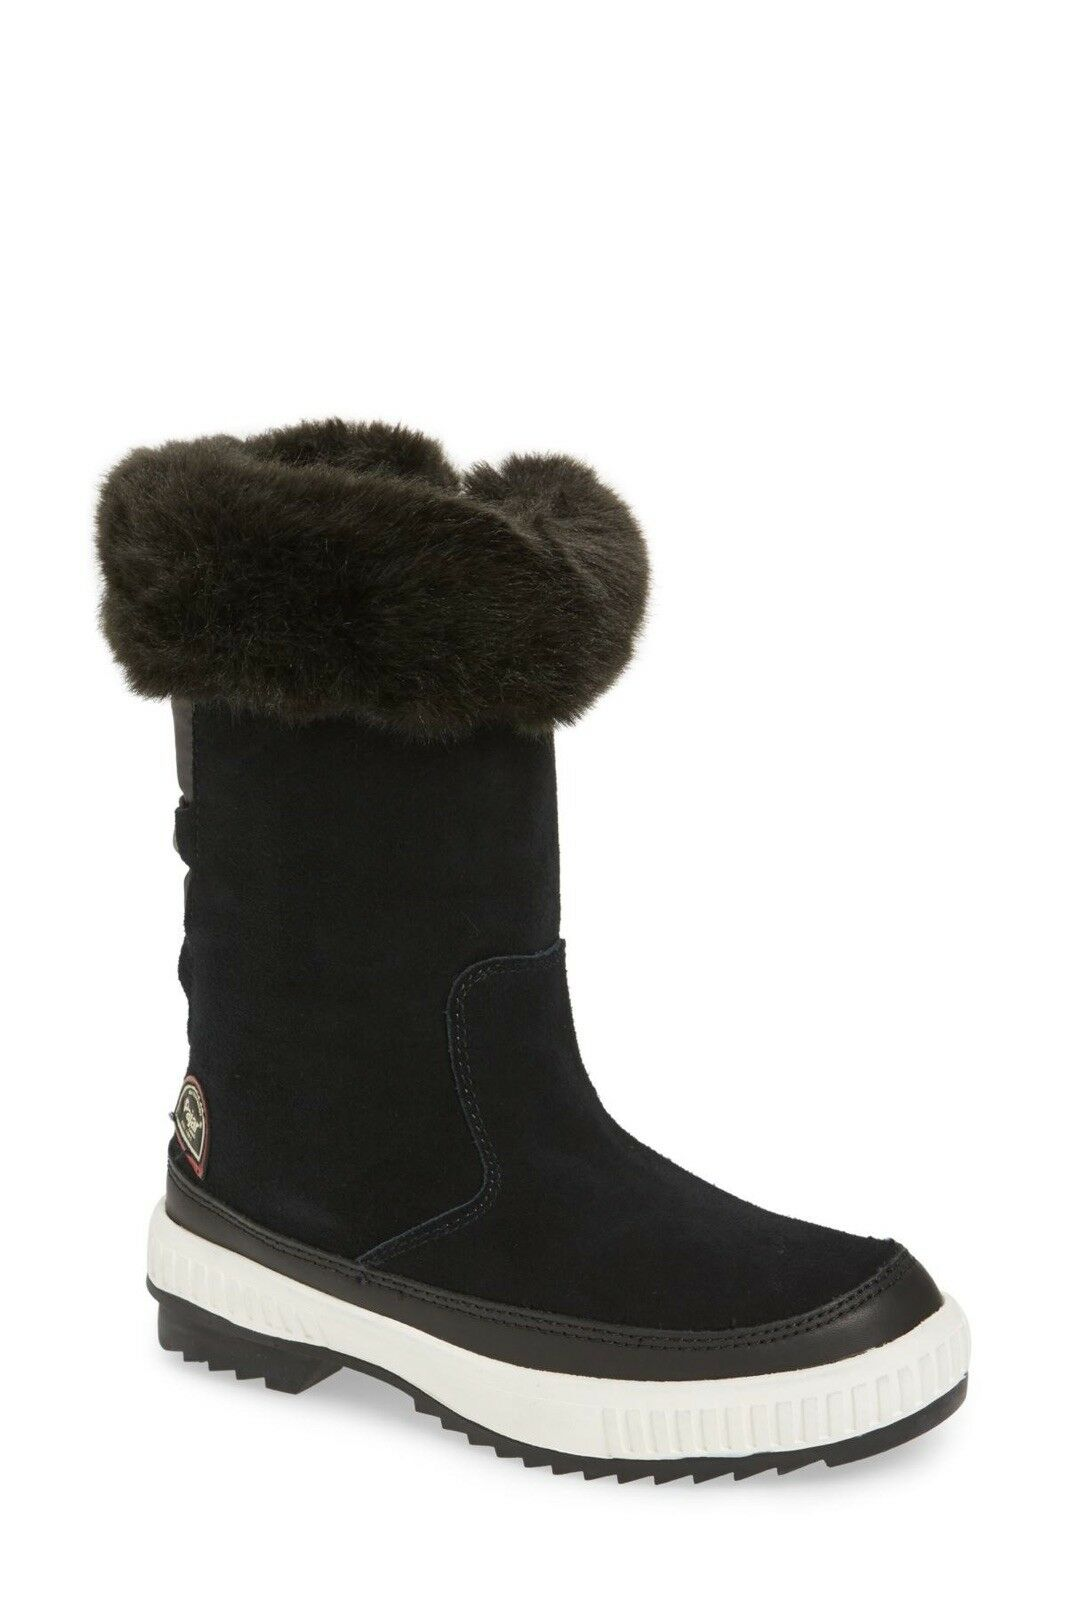 185 NWT Pajar Kady Waterproof Insulated Plush Cuff Winter Boot Black Sz 5.5 36